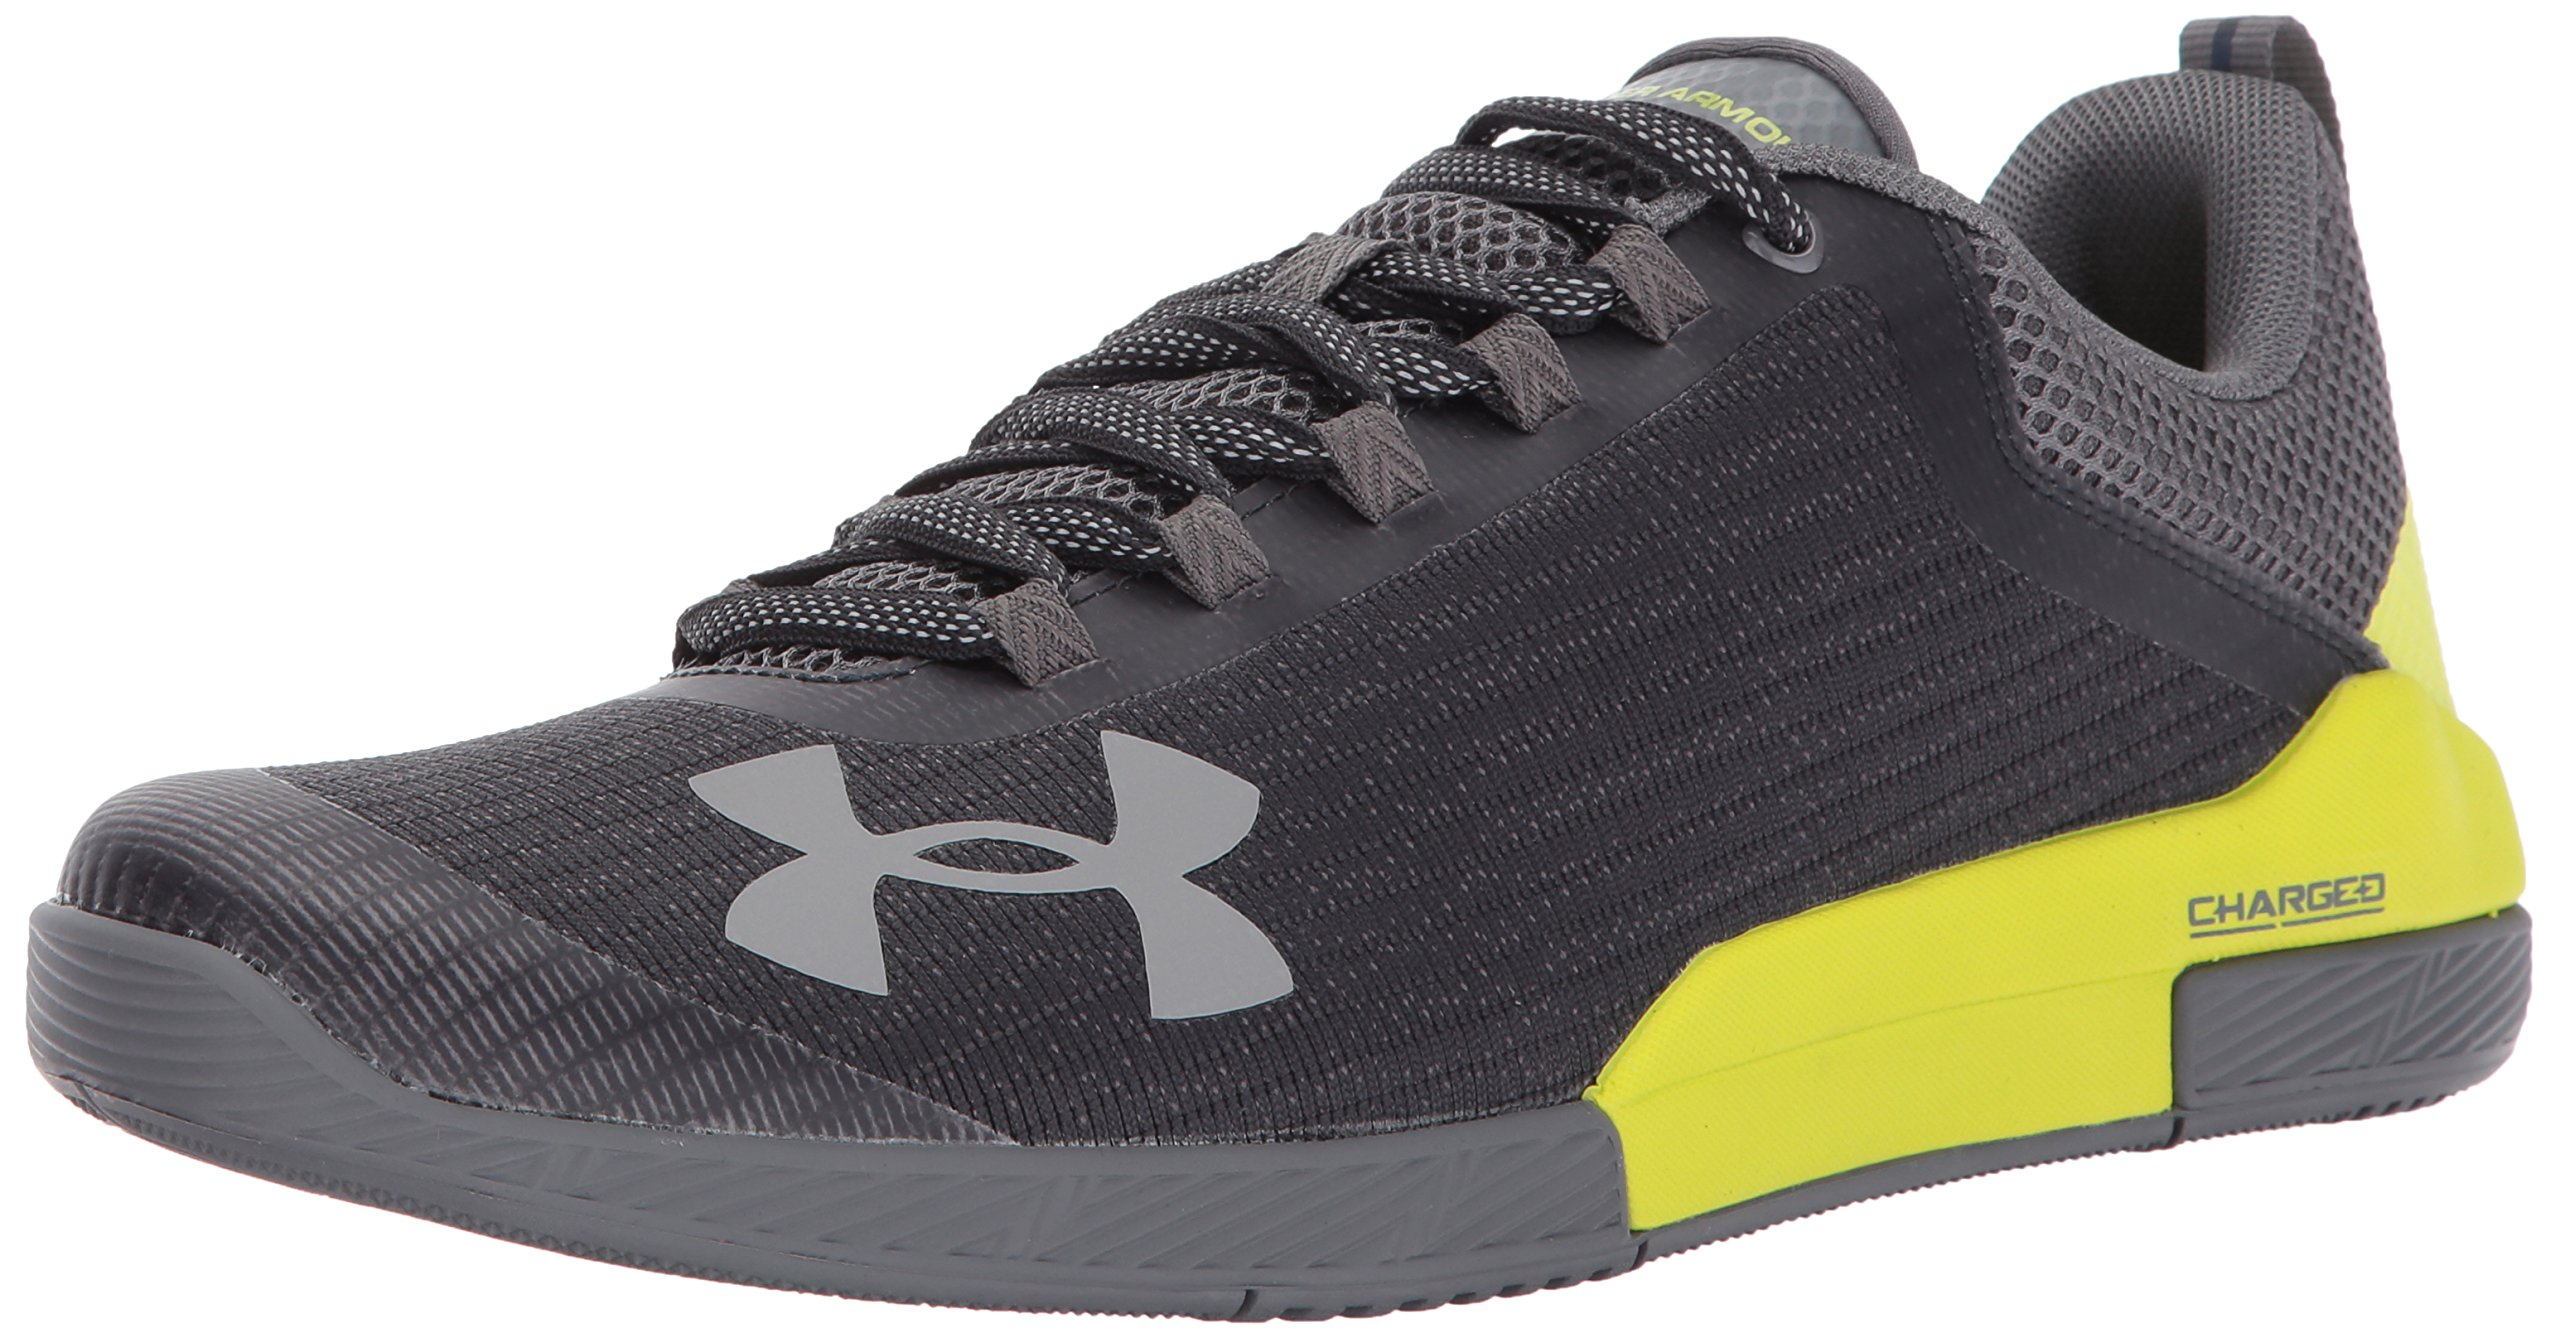 Under Armour Men's Charged Legend Sneaker, Anthracite (016)/Smash Yellow, 12